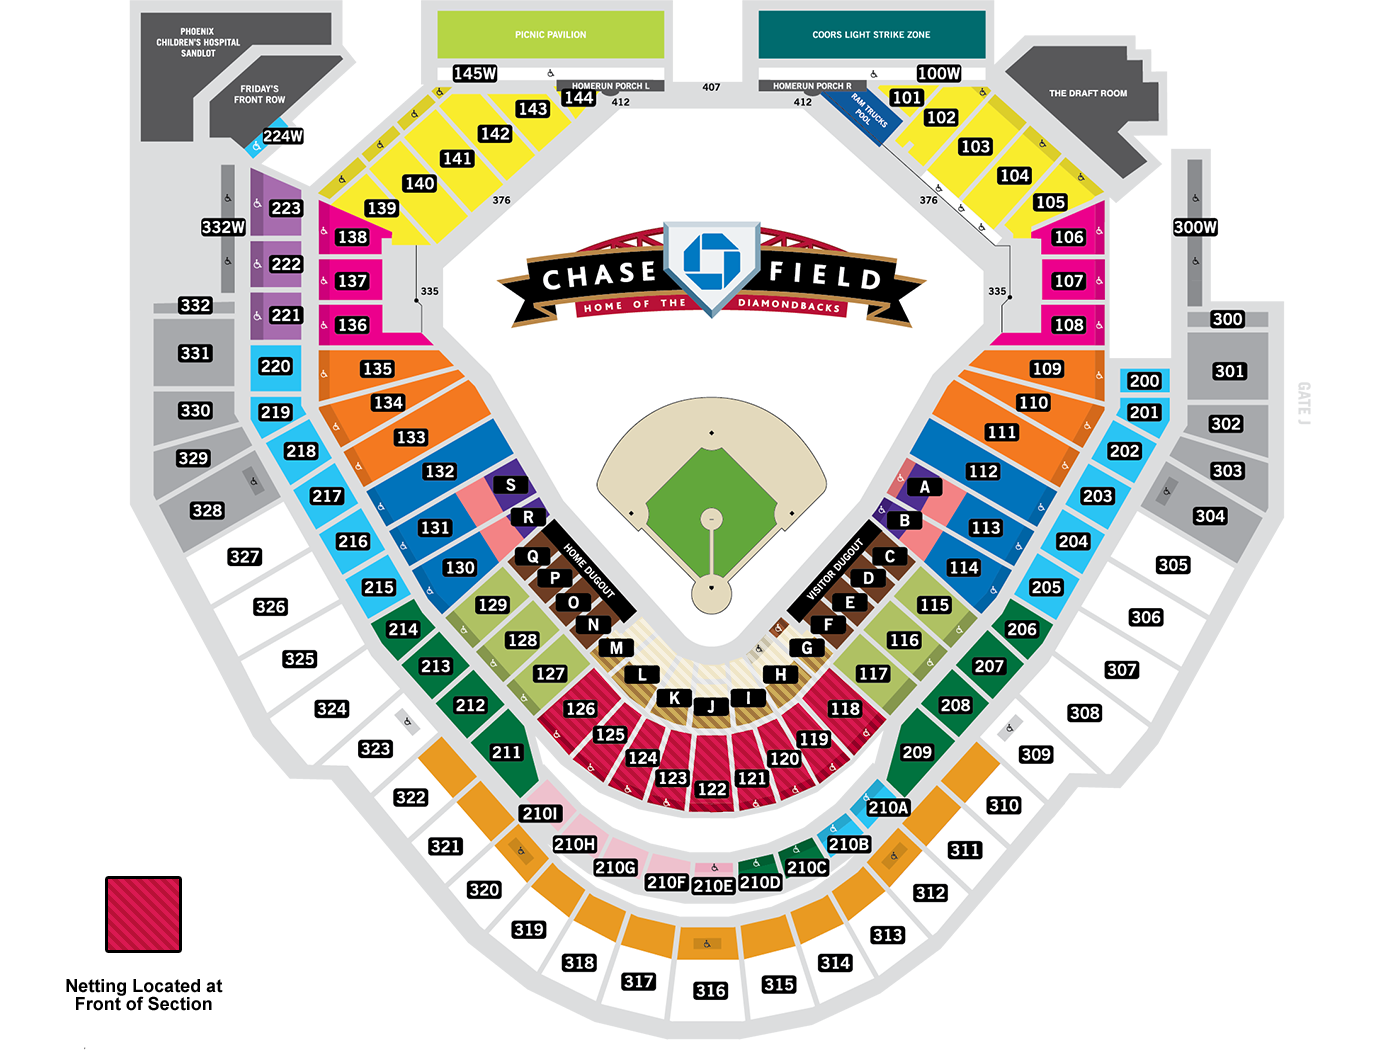 Chase Field Seating Map | MLB.com on